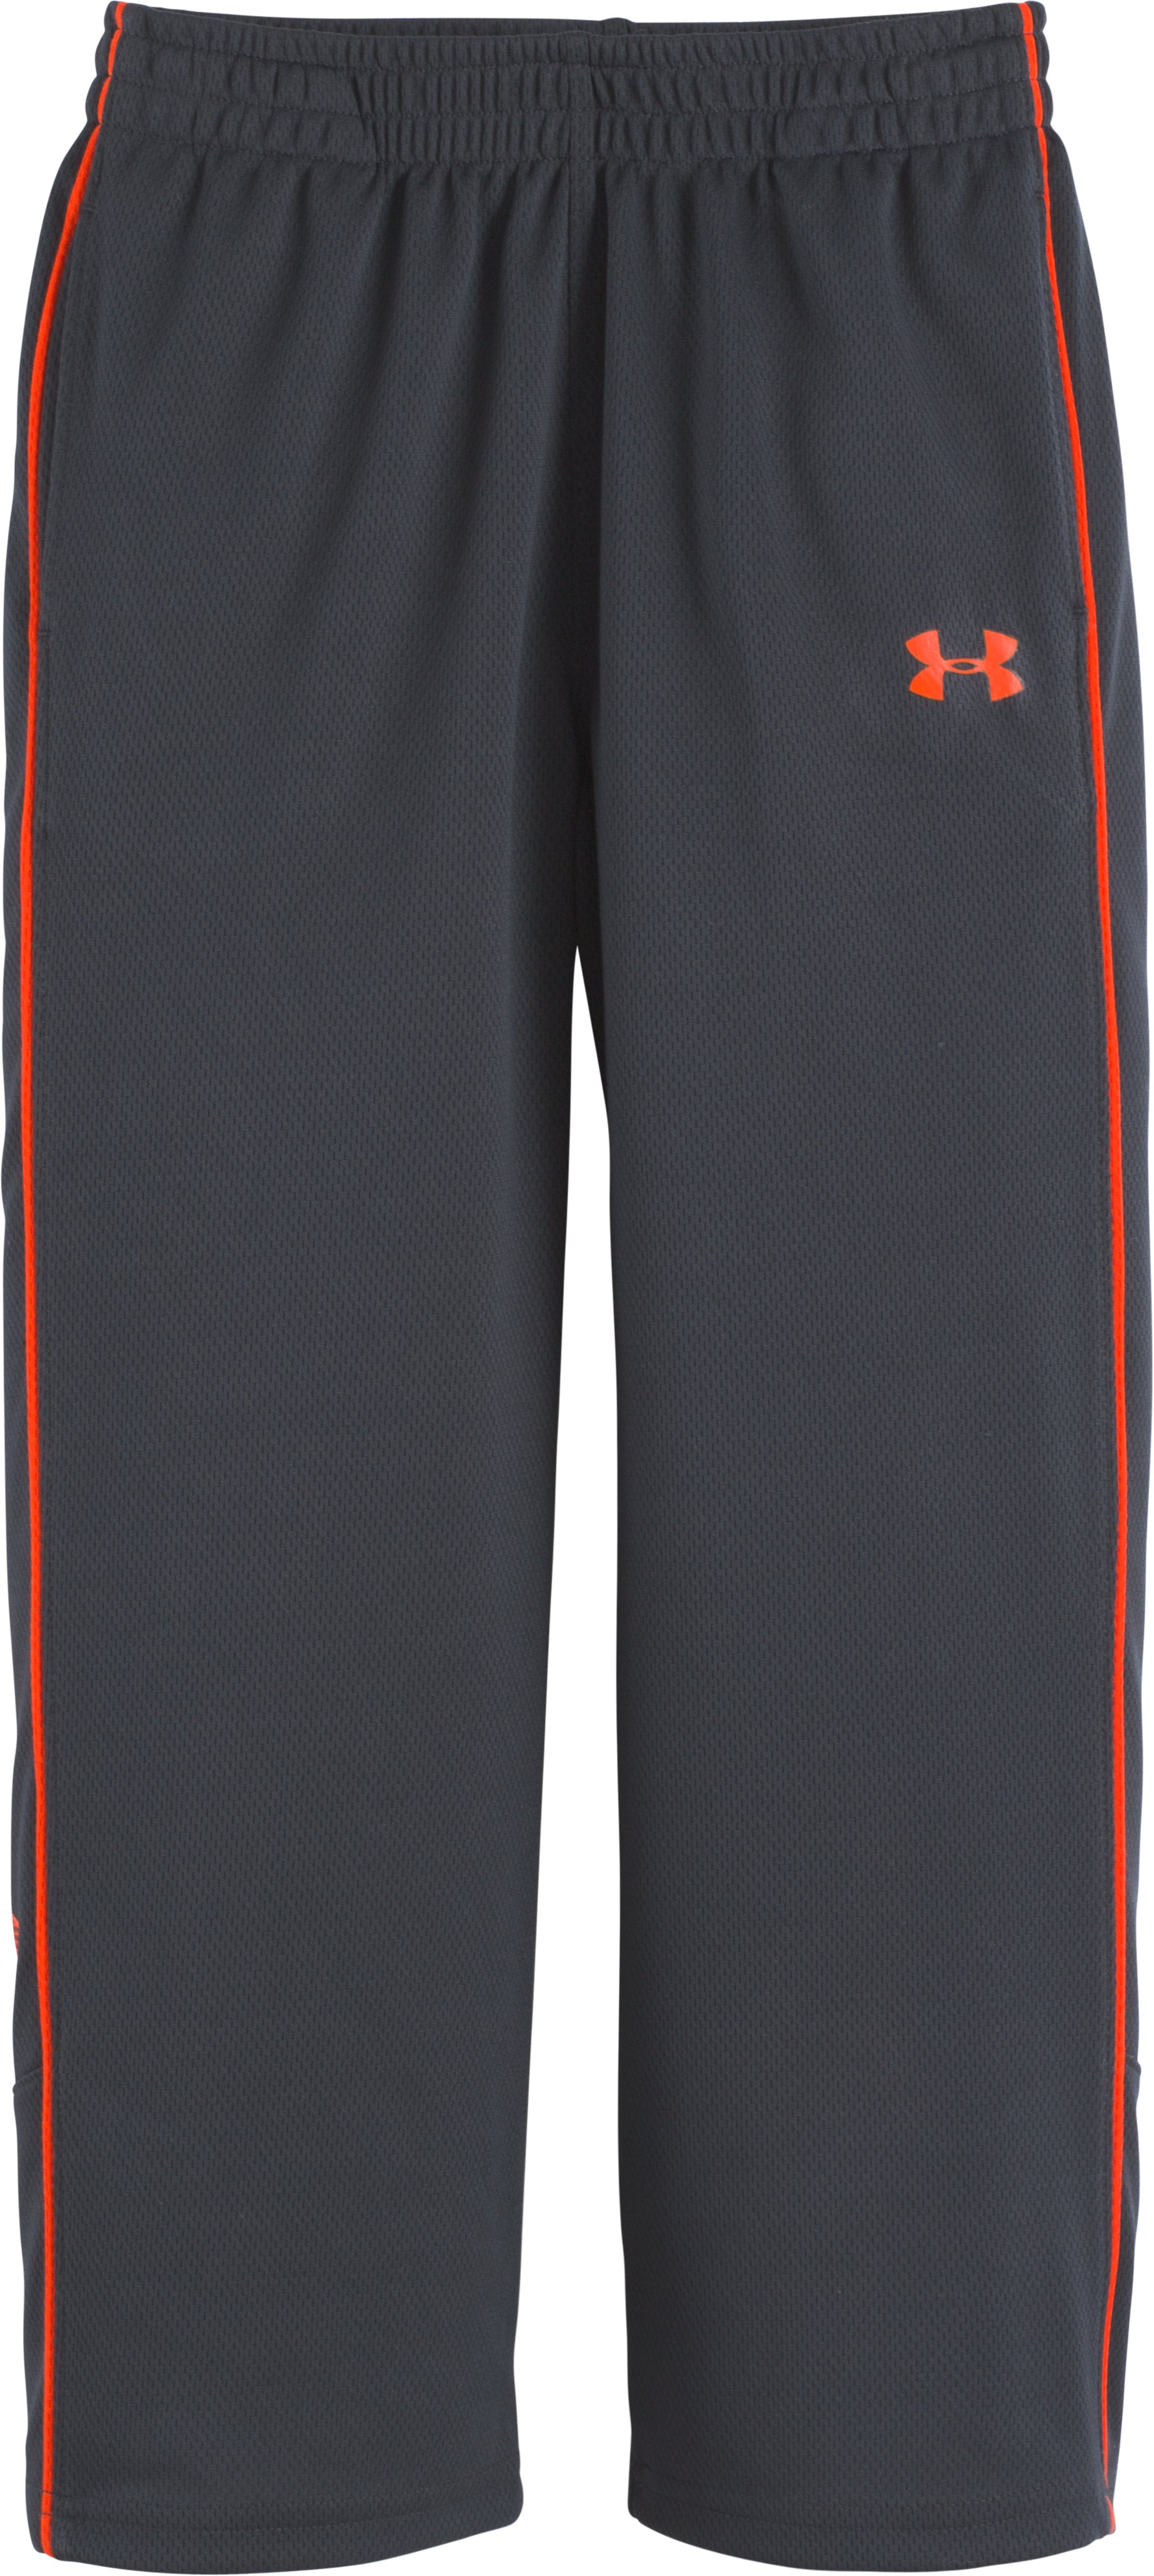 Boys' Toddler UA Midweight Champ Warm-Up Pants, STEALTH GRAY